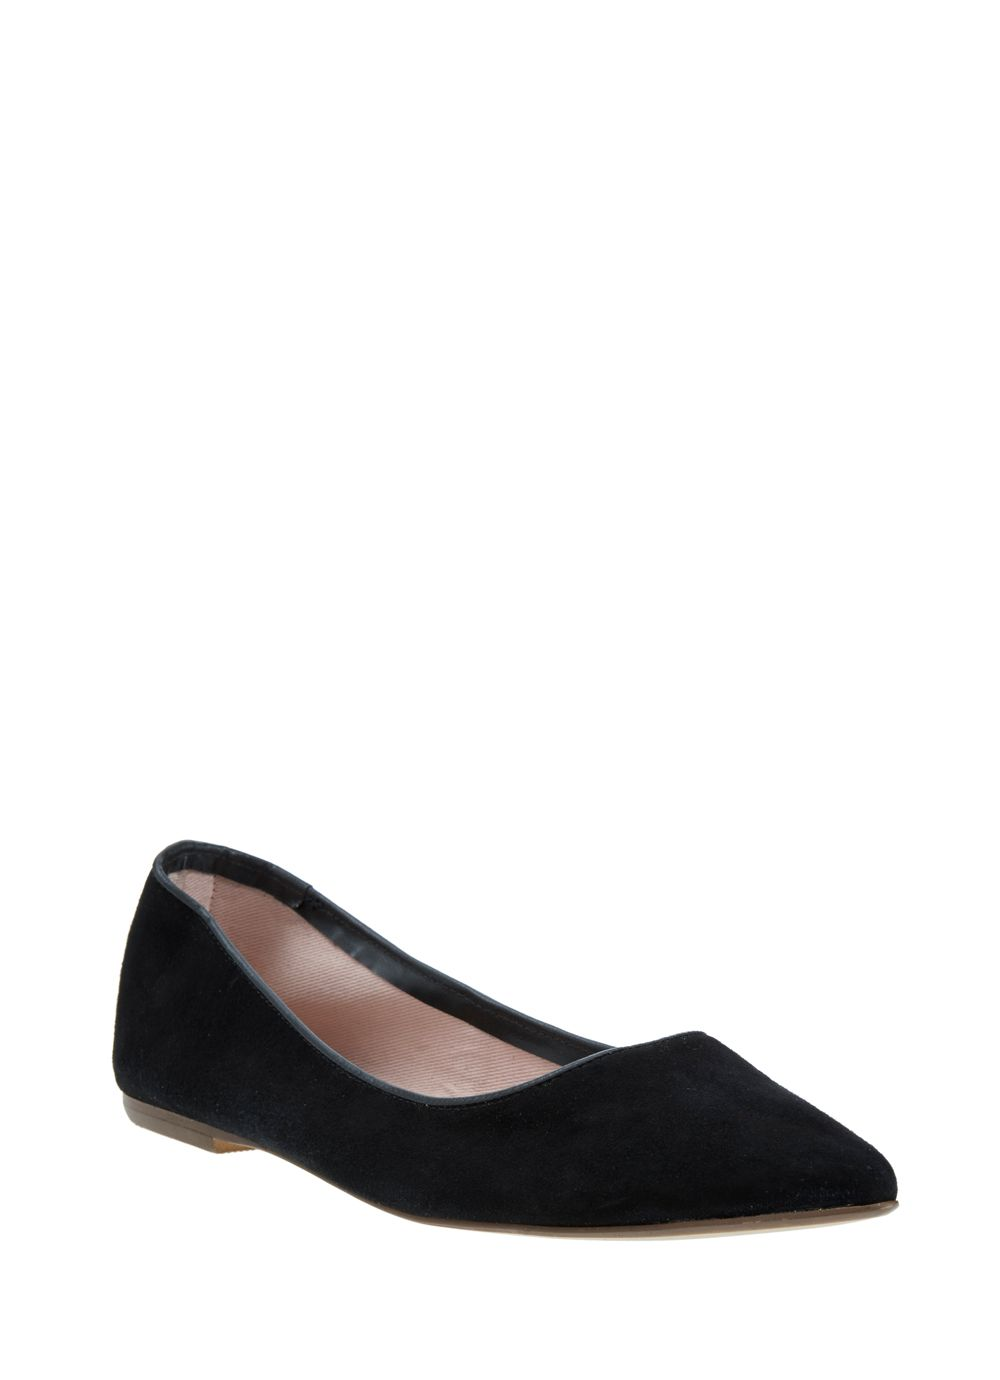 Black pixie suede pump